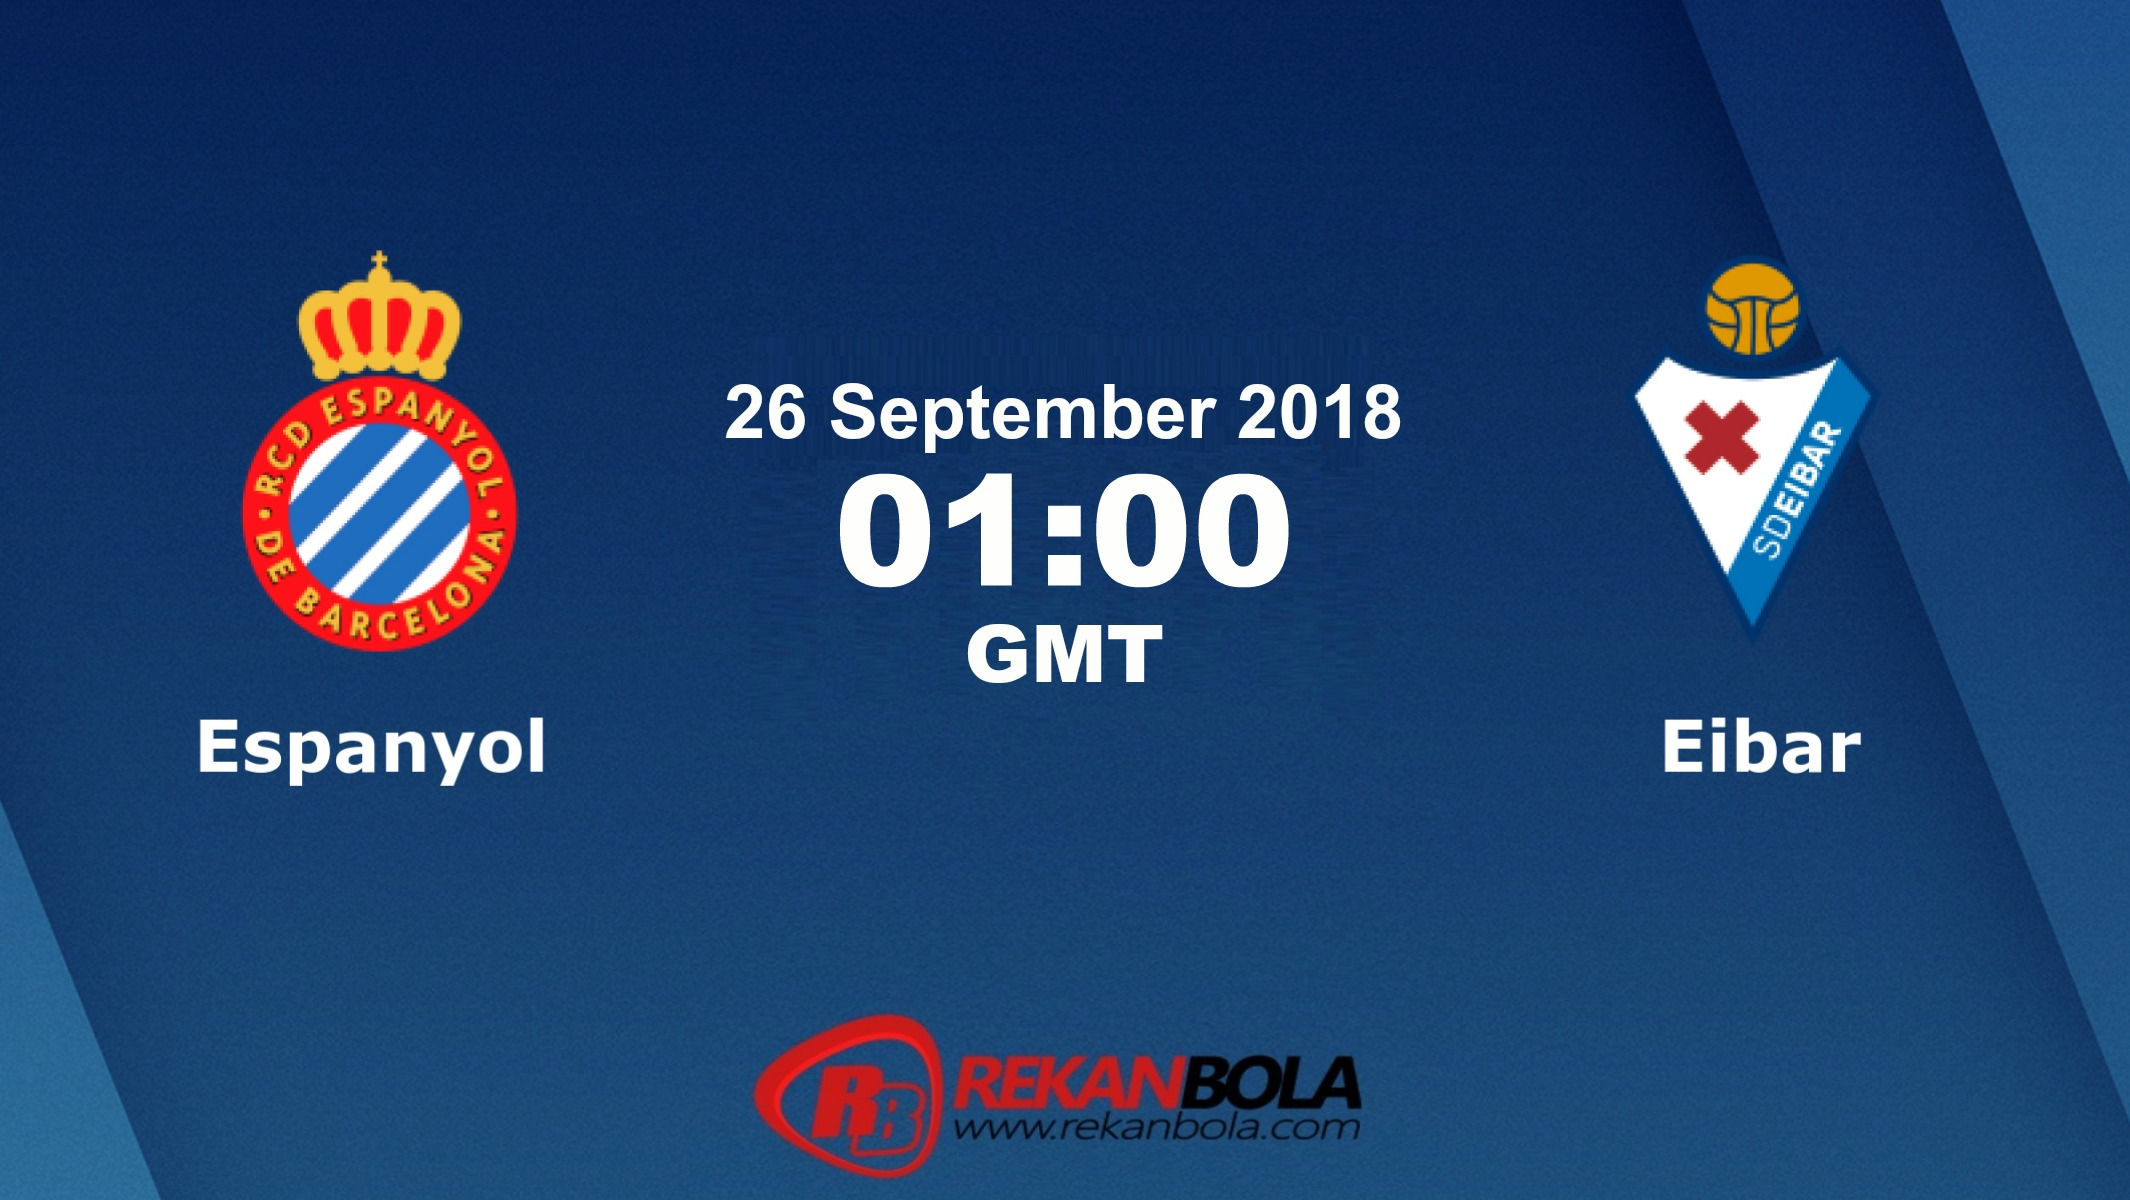 Nonton Siaran Live Streaming Espanyol Vs Eibar 26 September 2018